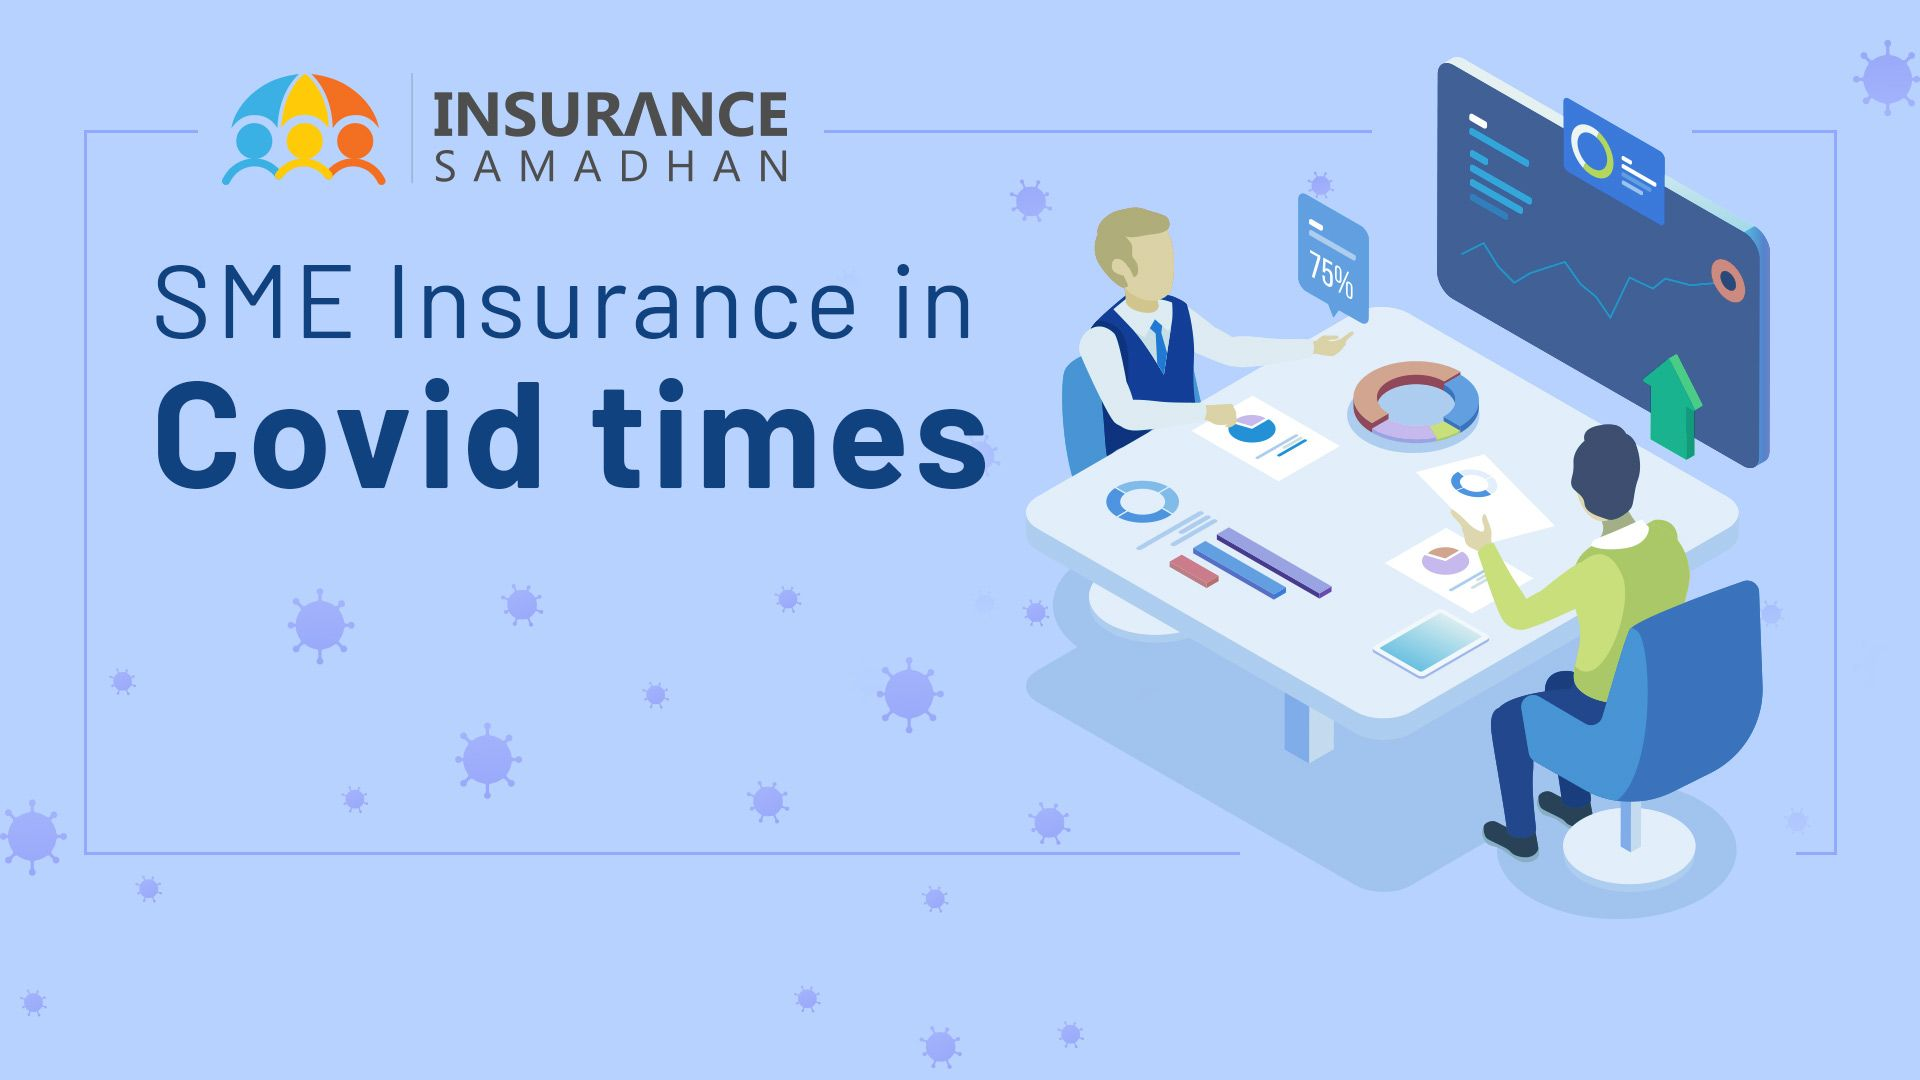 SME Insurance: Small and Medium Enterprise Insurance Policy in Times of COVID-19